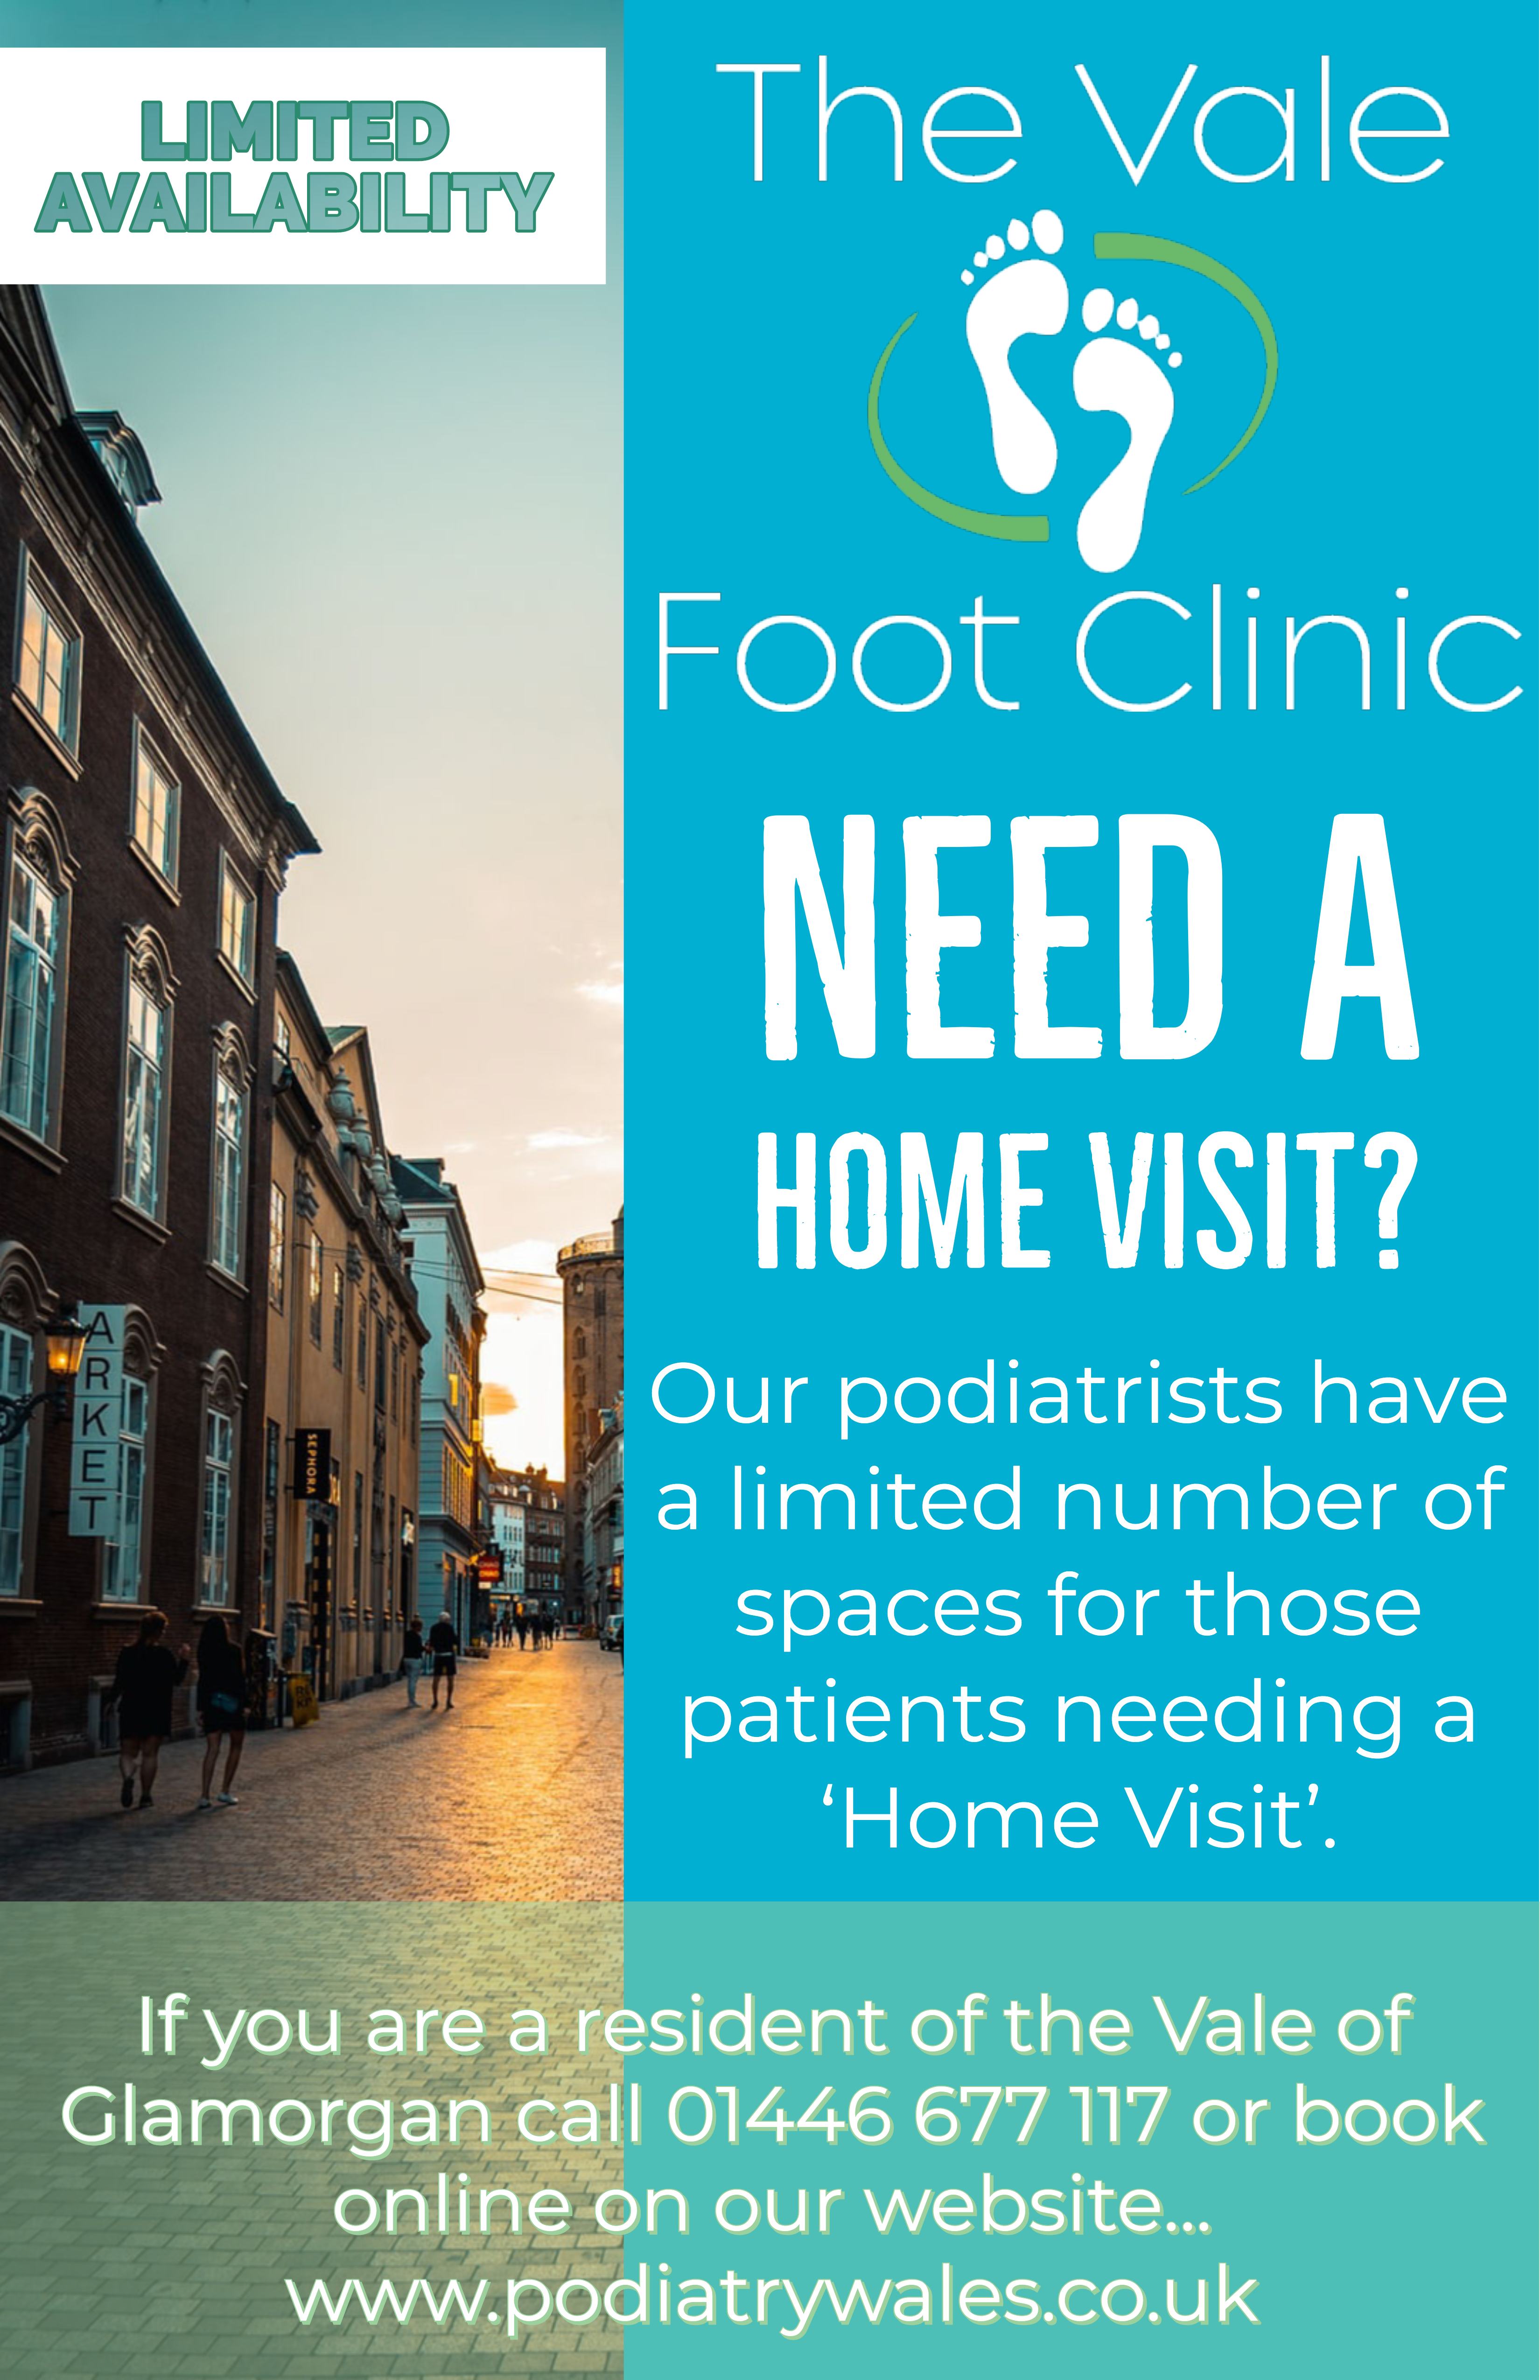 Need a Home Visit?